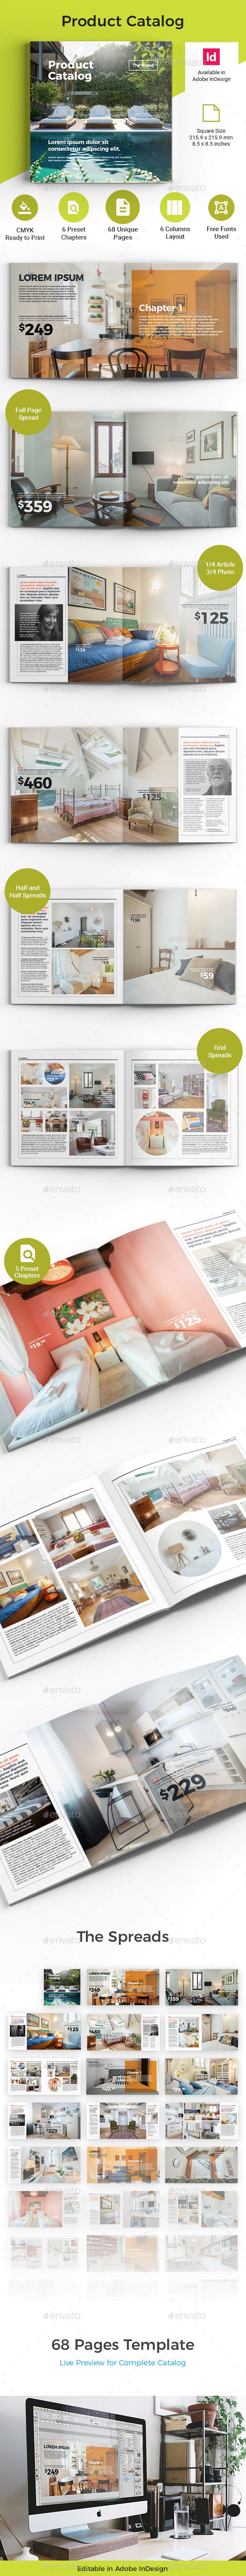 Product Catalog Template InDesign INDD